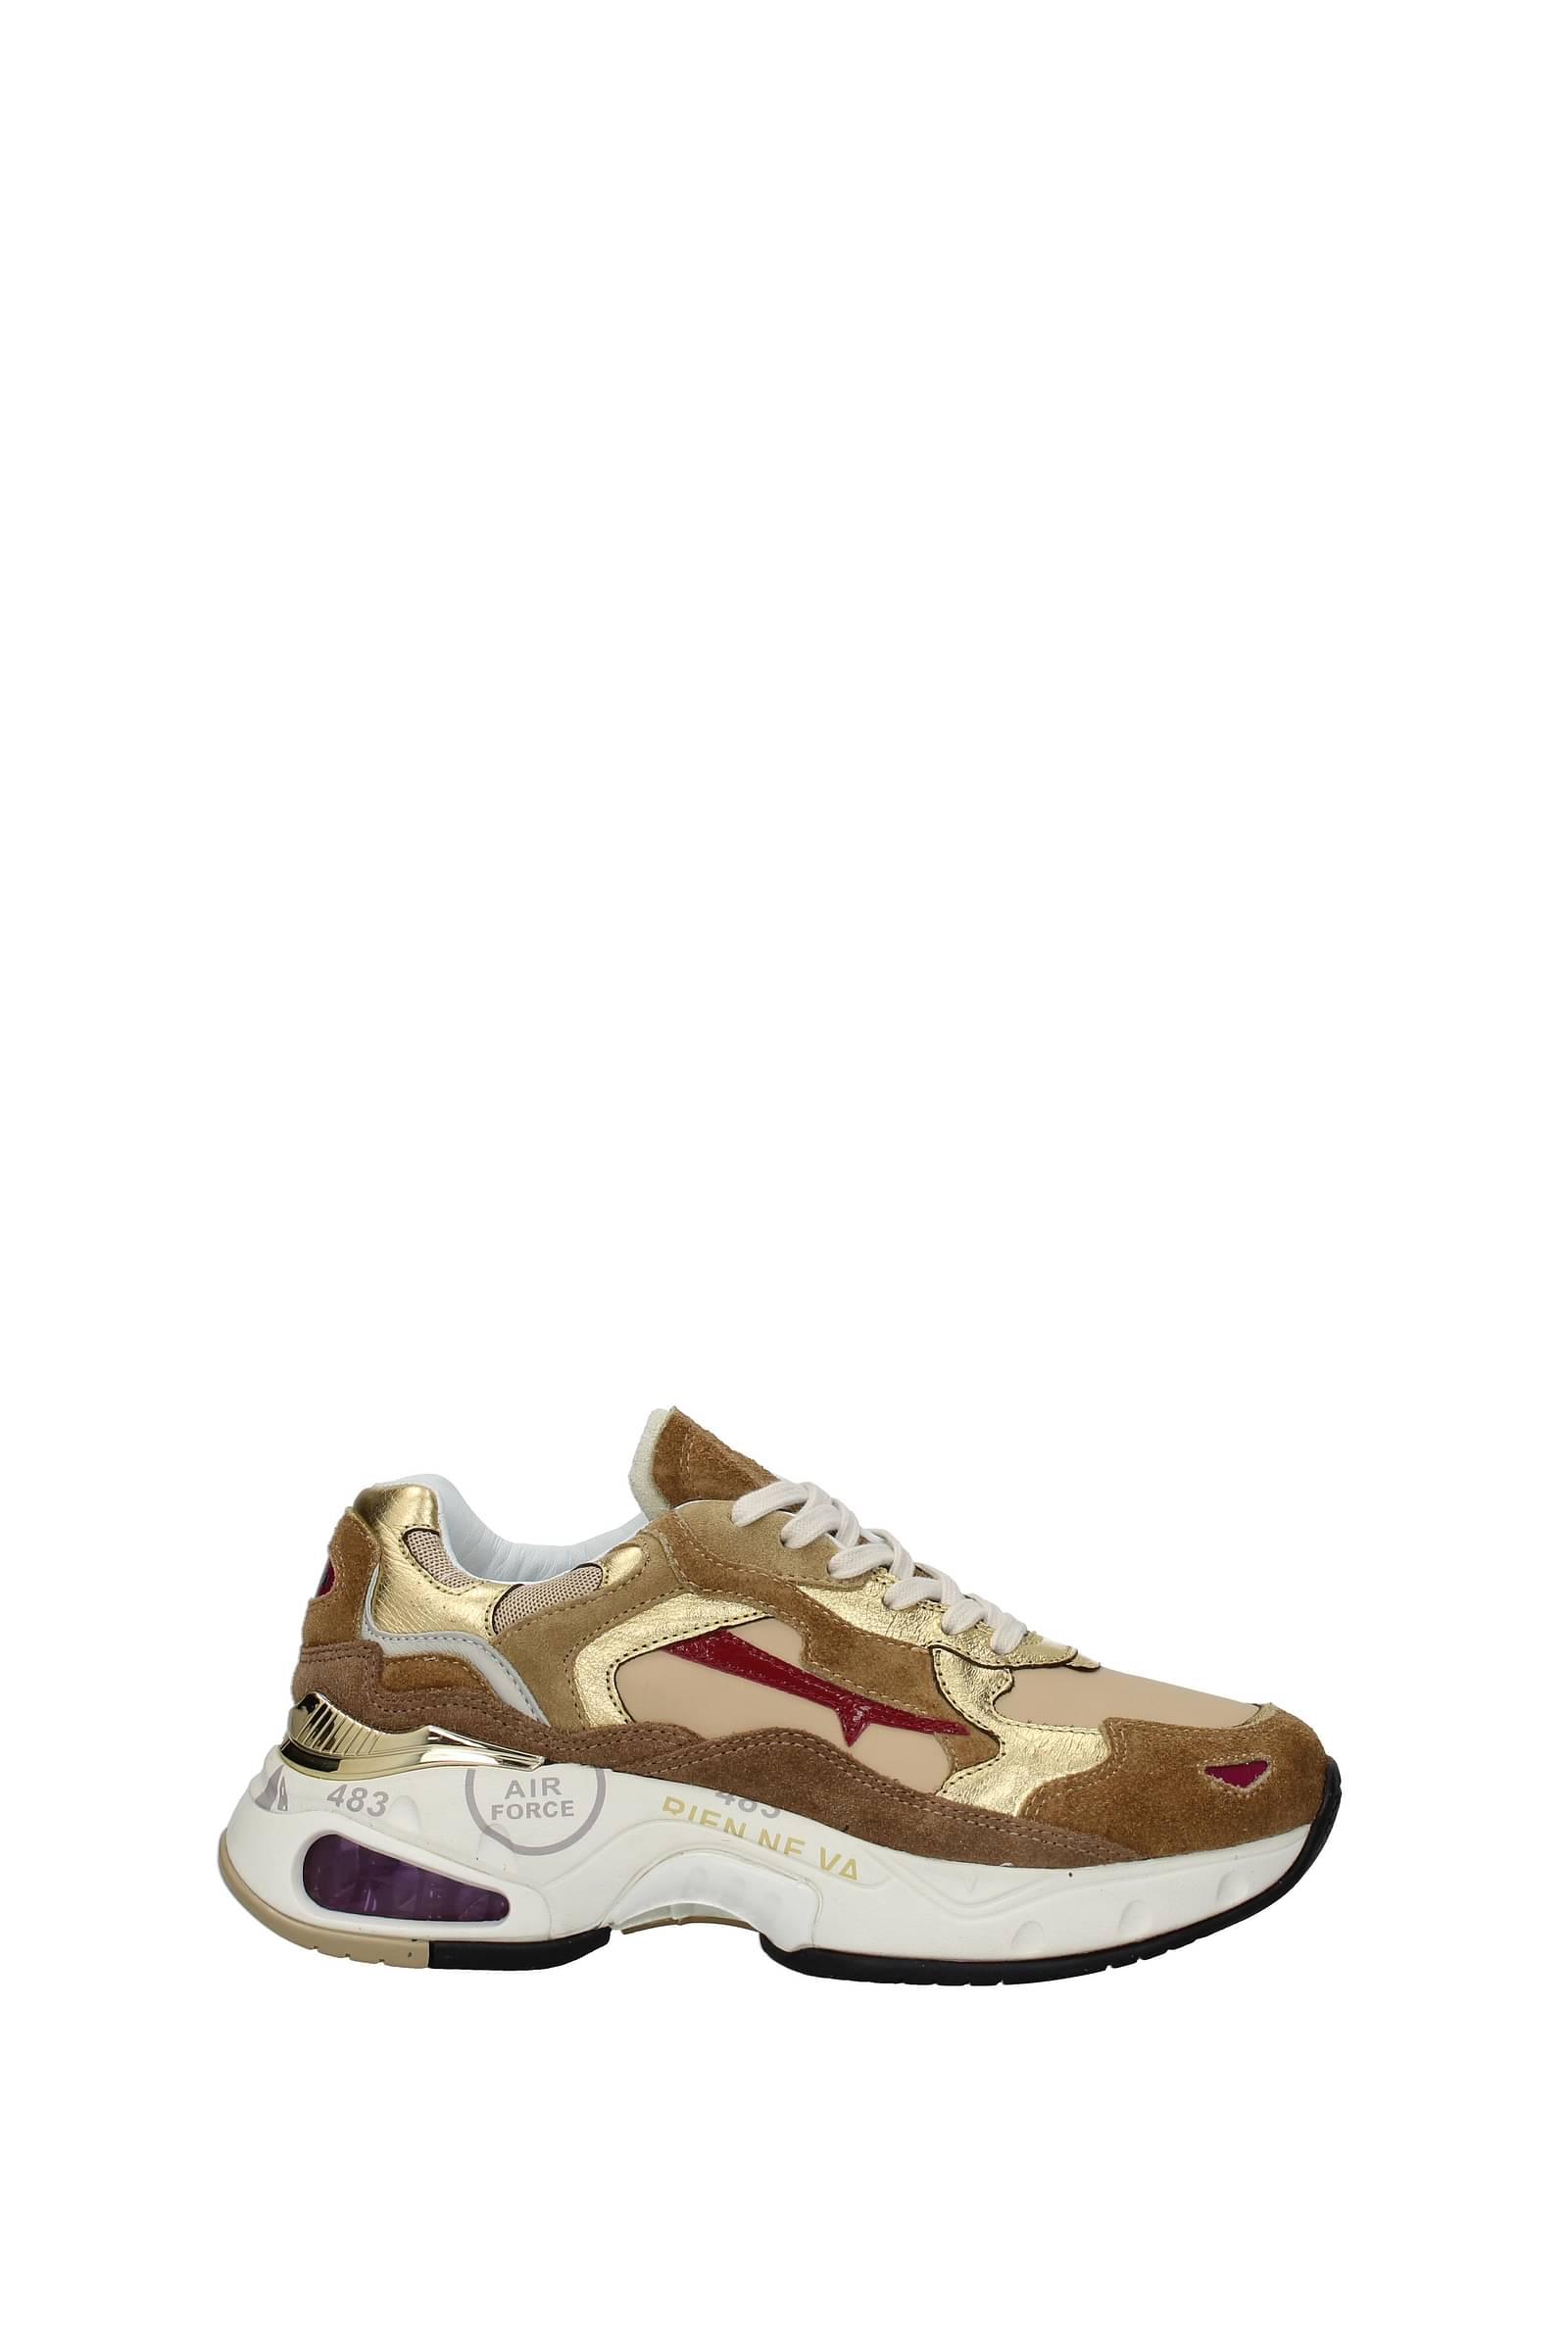 Premiata Shoes: discover the sales on